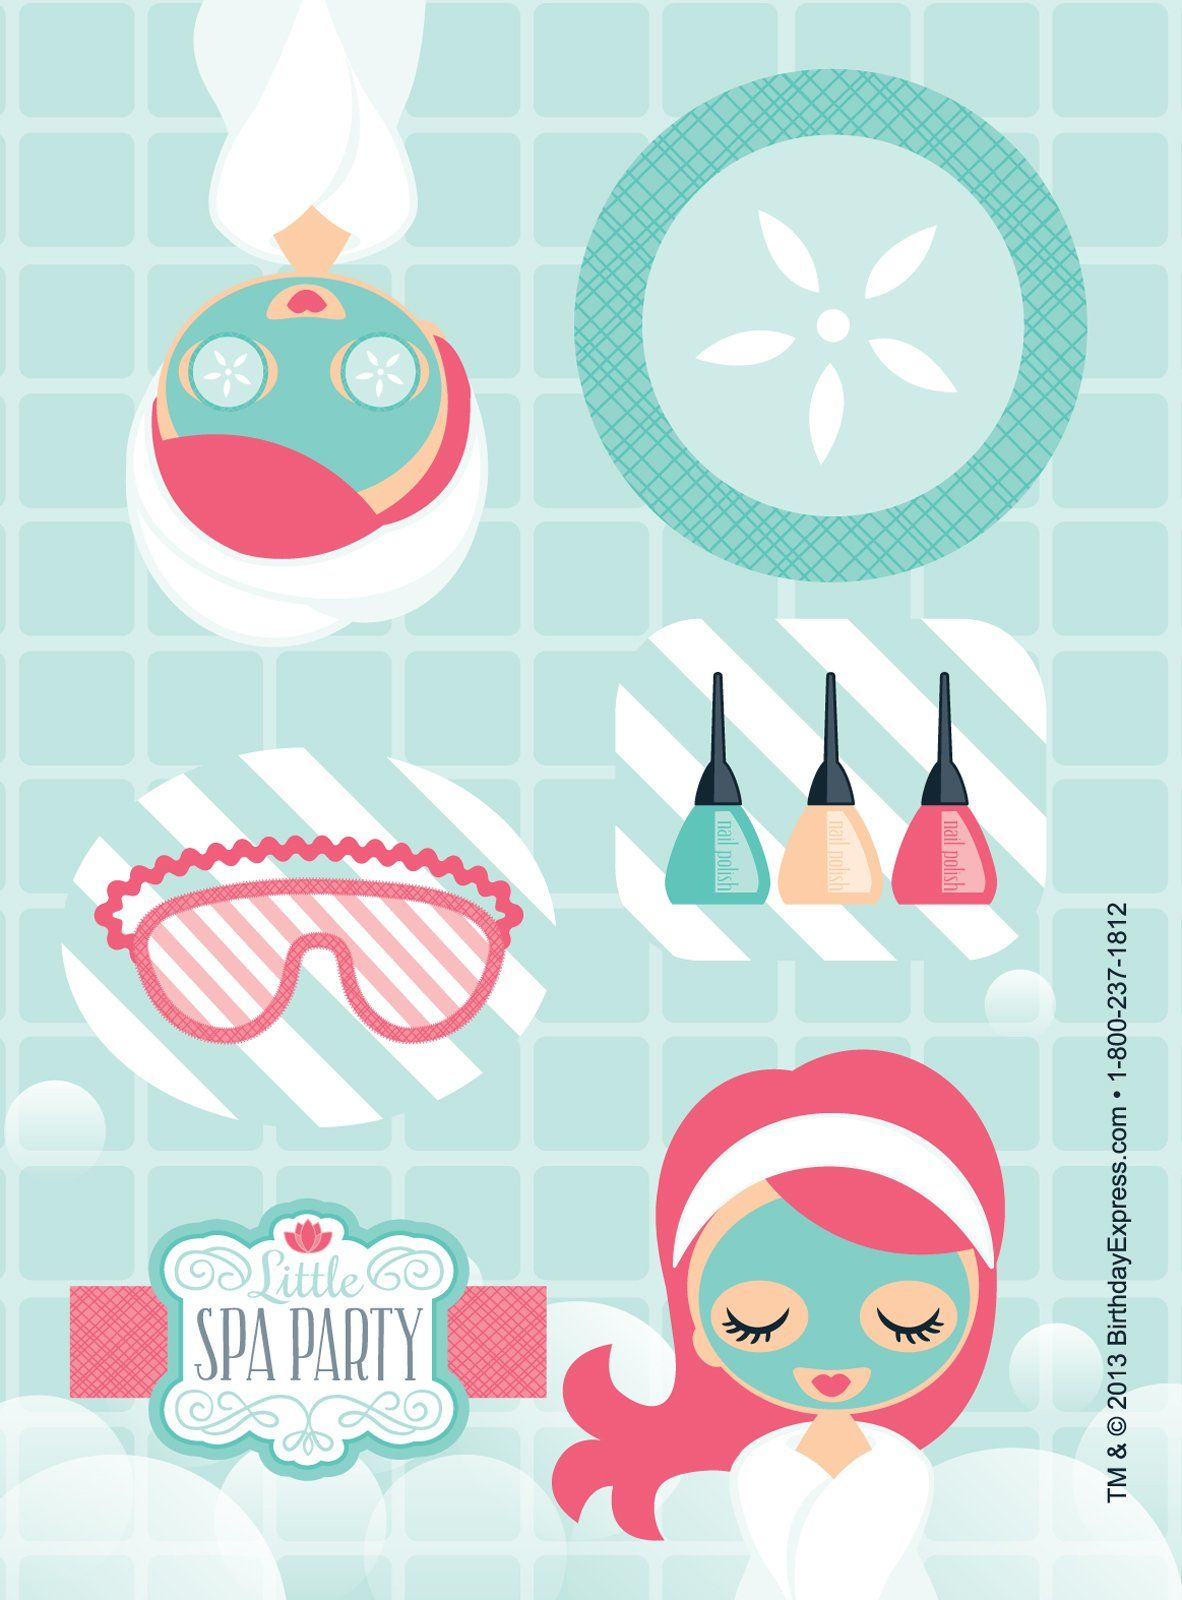 Spa Party Invitation DIY Print Your Own Choose Your Girls – Printable Spa Party Invitations